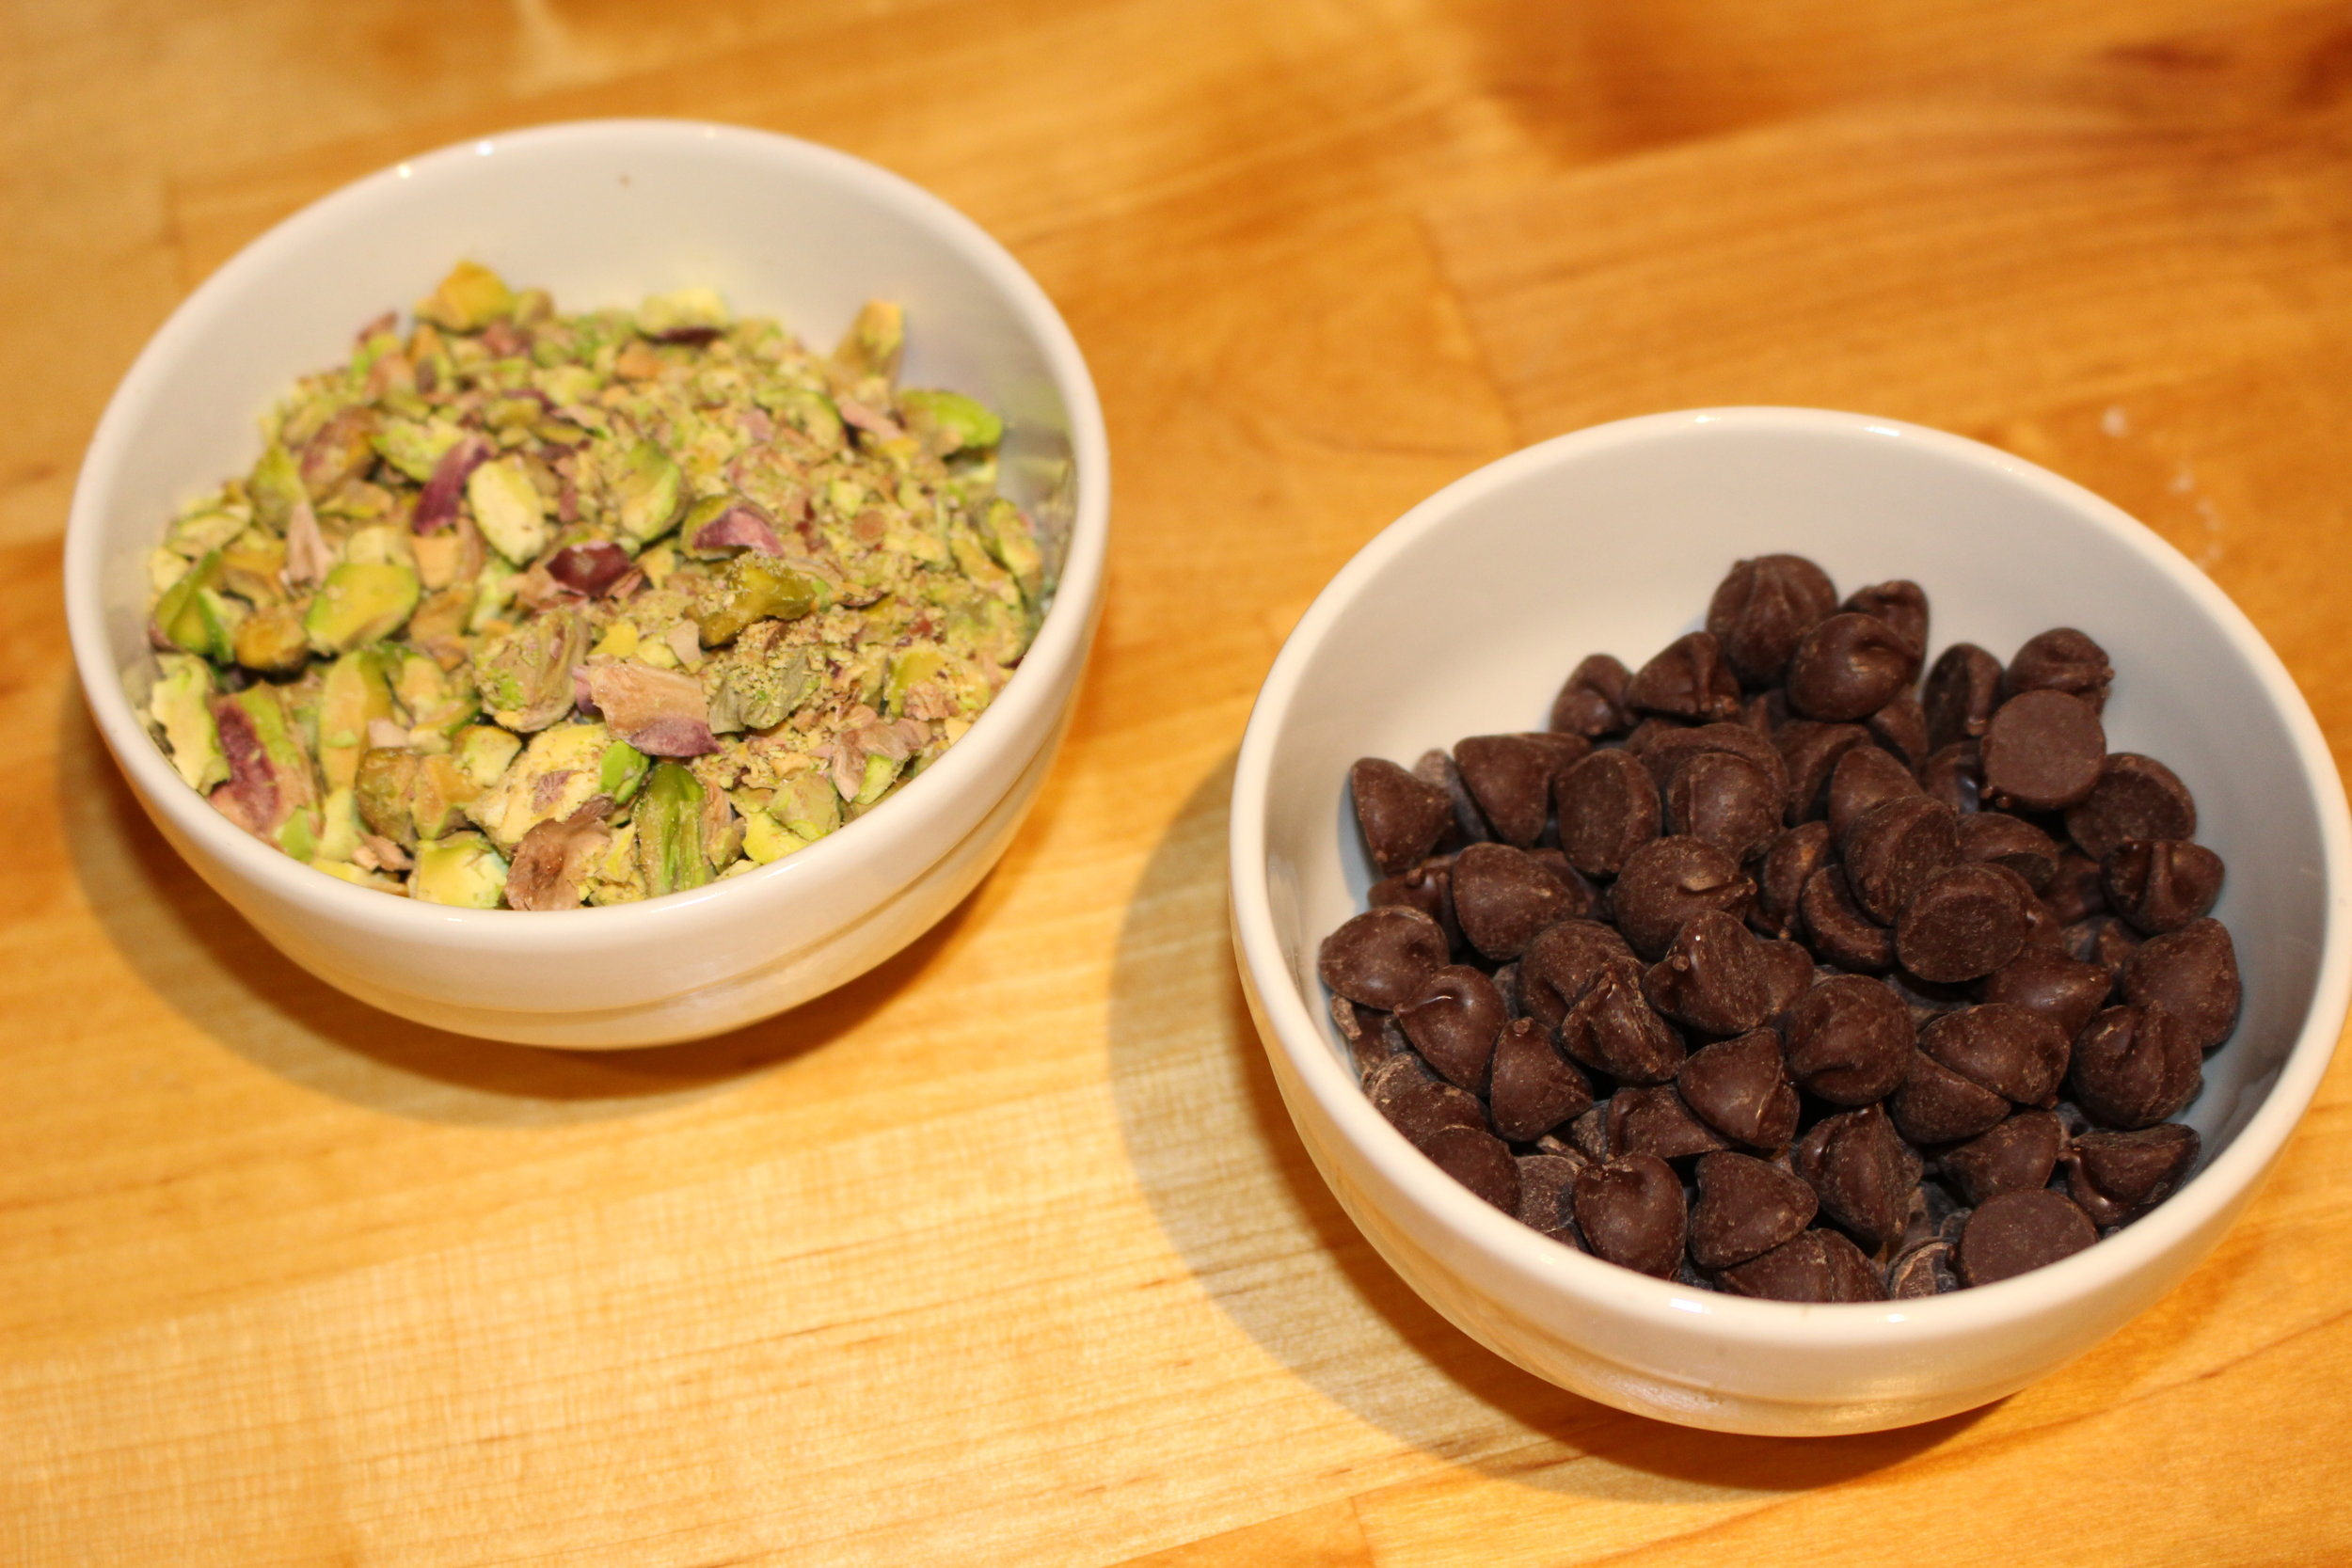 The pistachios are essential to get the real Sicilia taste and chocolate chips for good measure